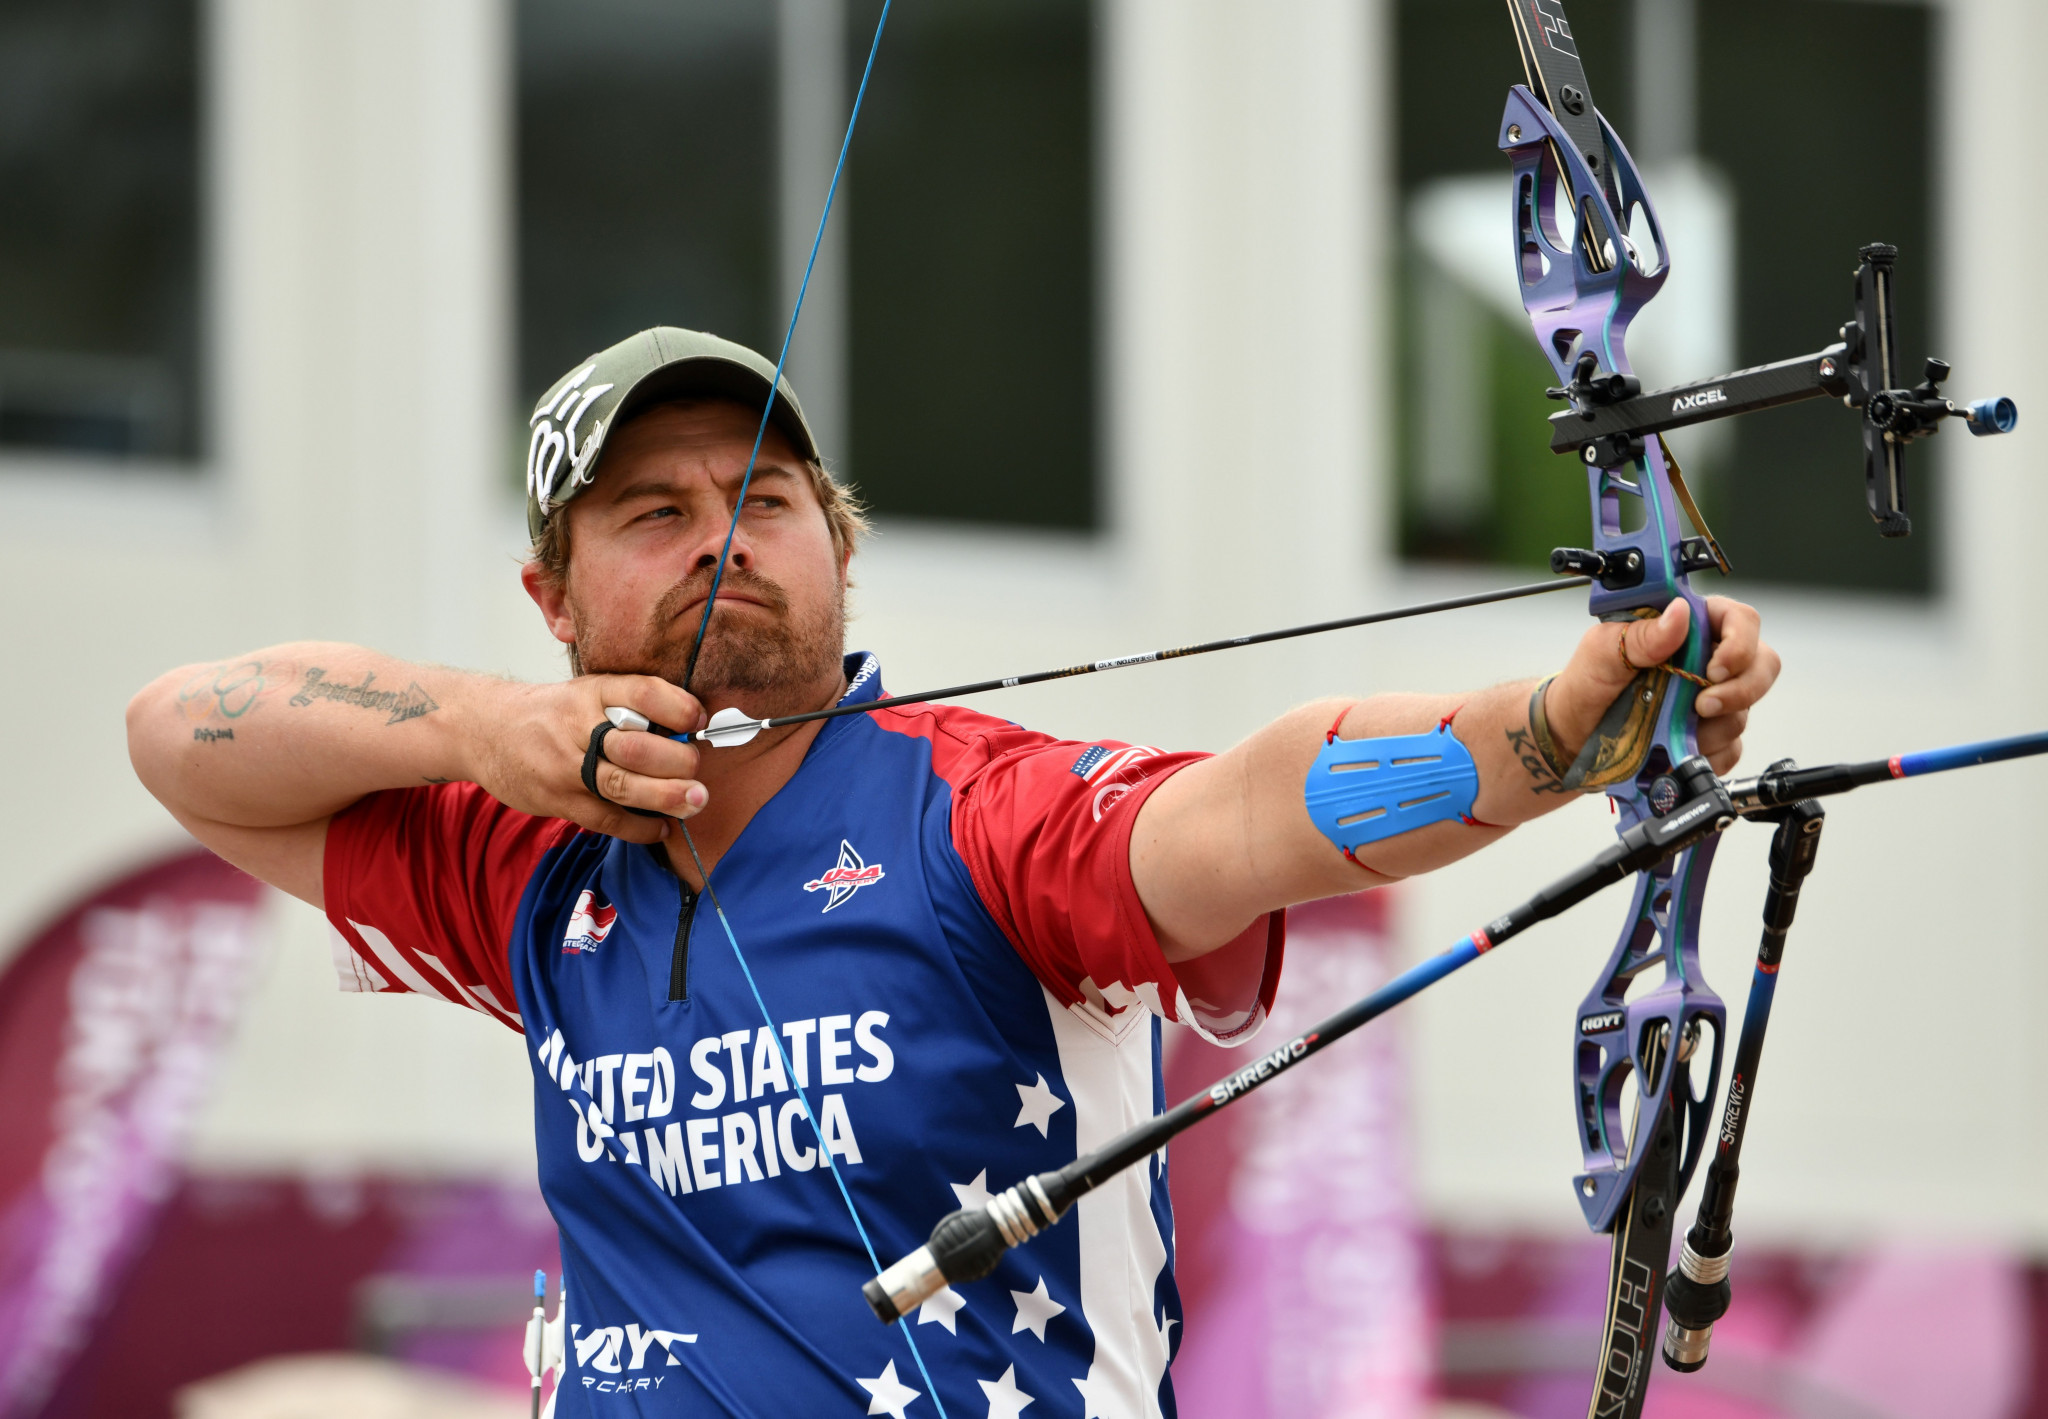 United States enjoy successful day at Indoor Archery World Series in Nîmes